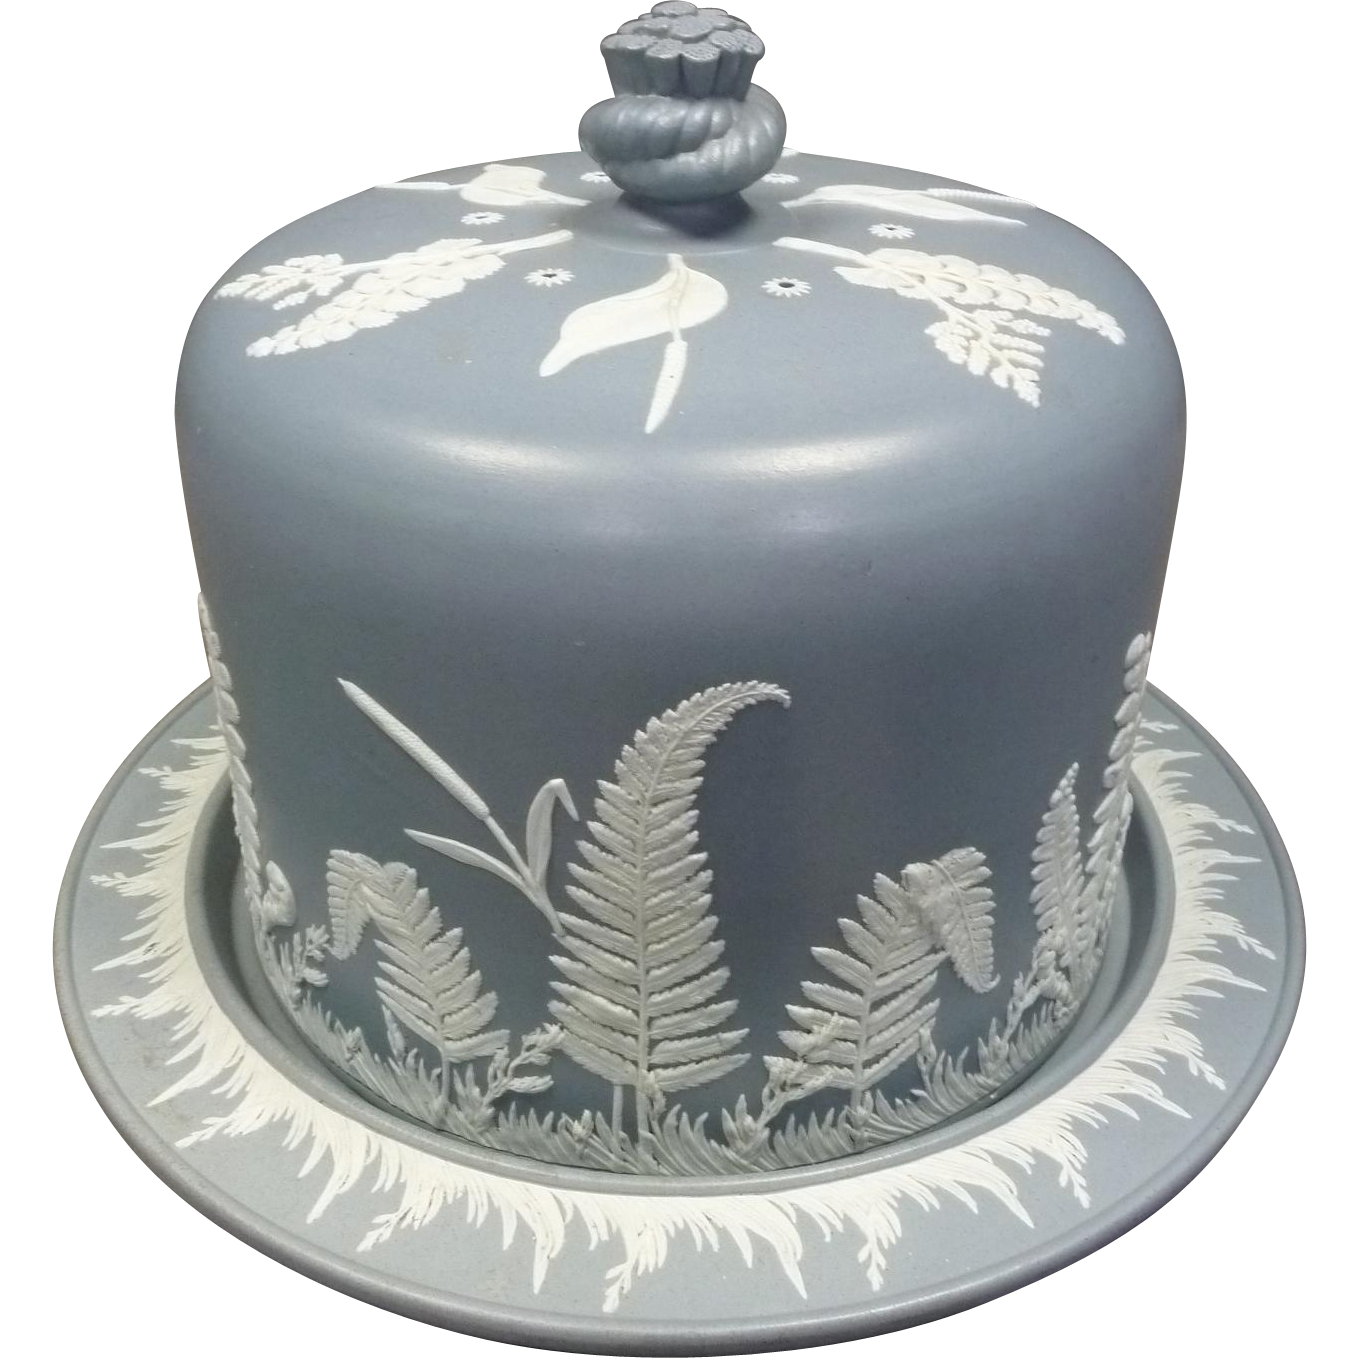 Jasperware Cheese Dome with Ferns and Cattails